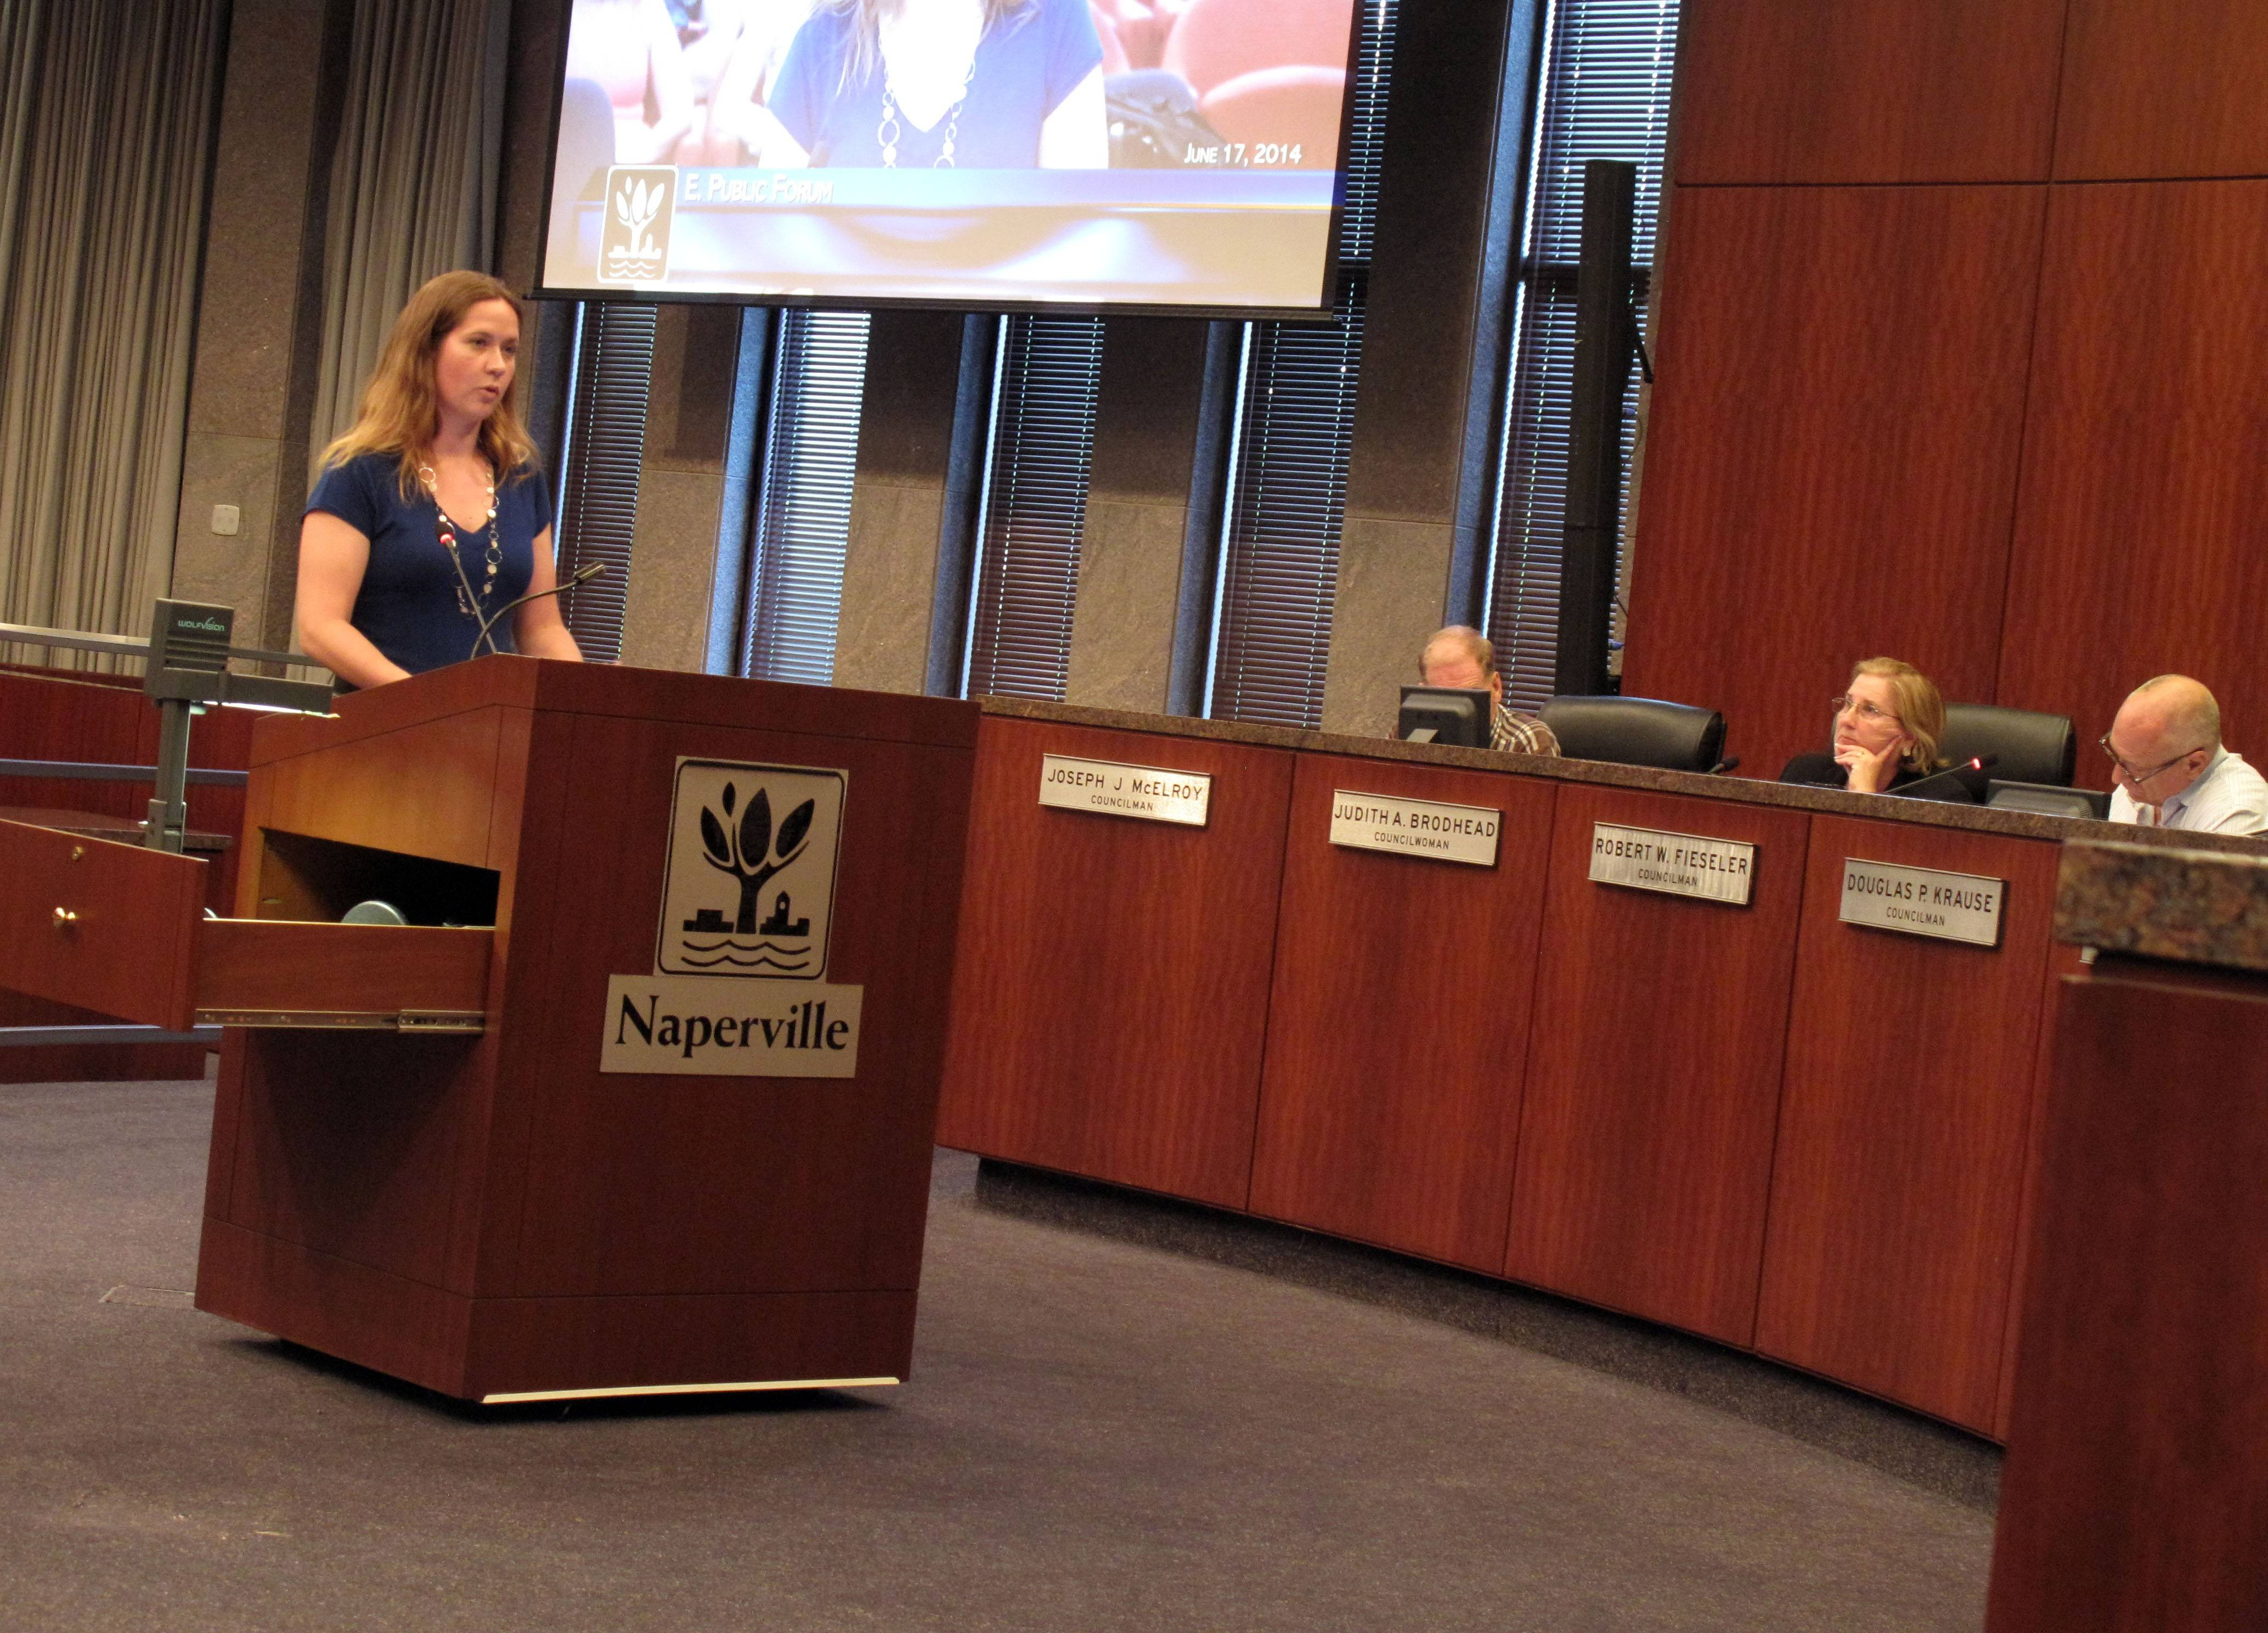 Anna Payton, executive director of the Naperville Area Humane Society, asks the Naperville City Council to consider banning the sale of pets from so-called puppy mills.